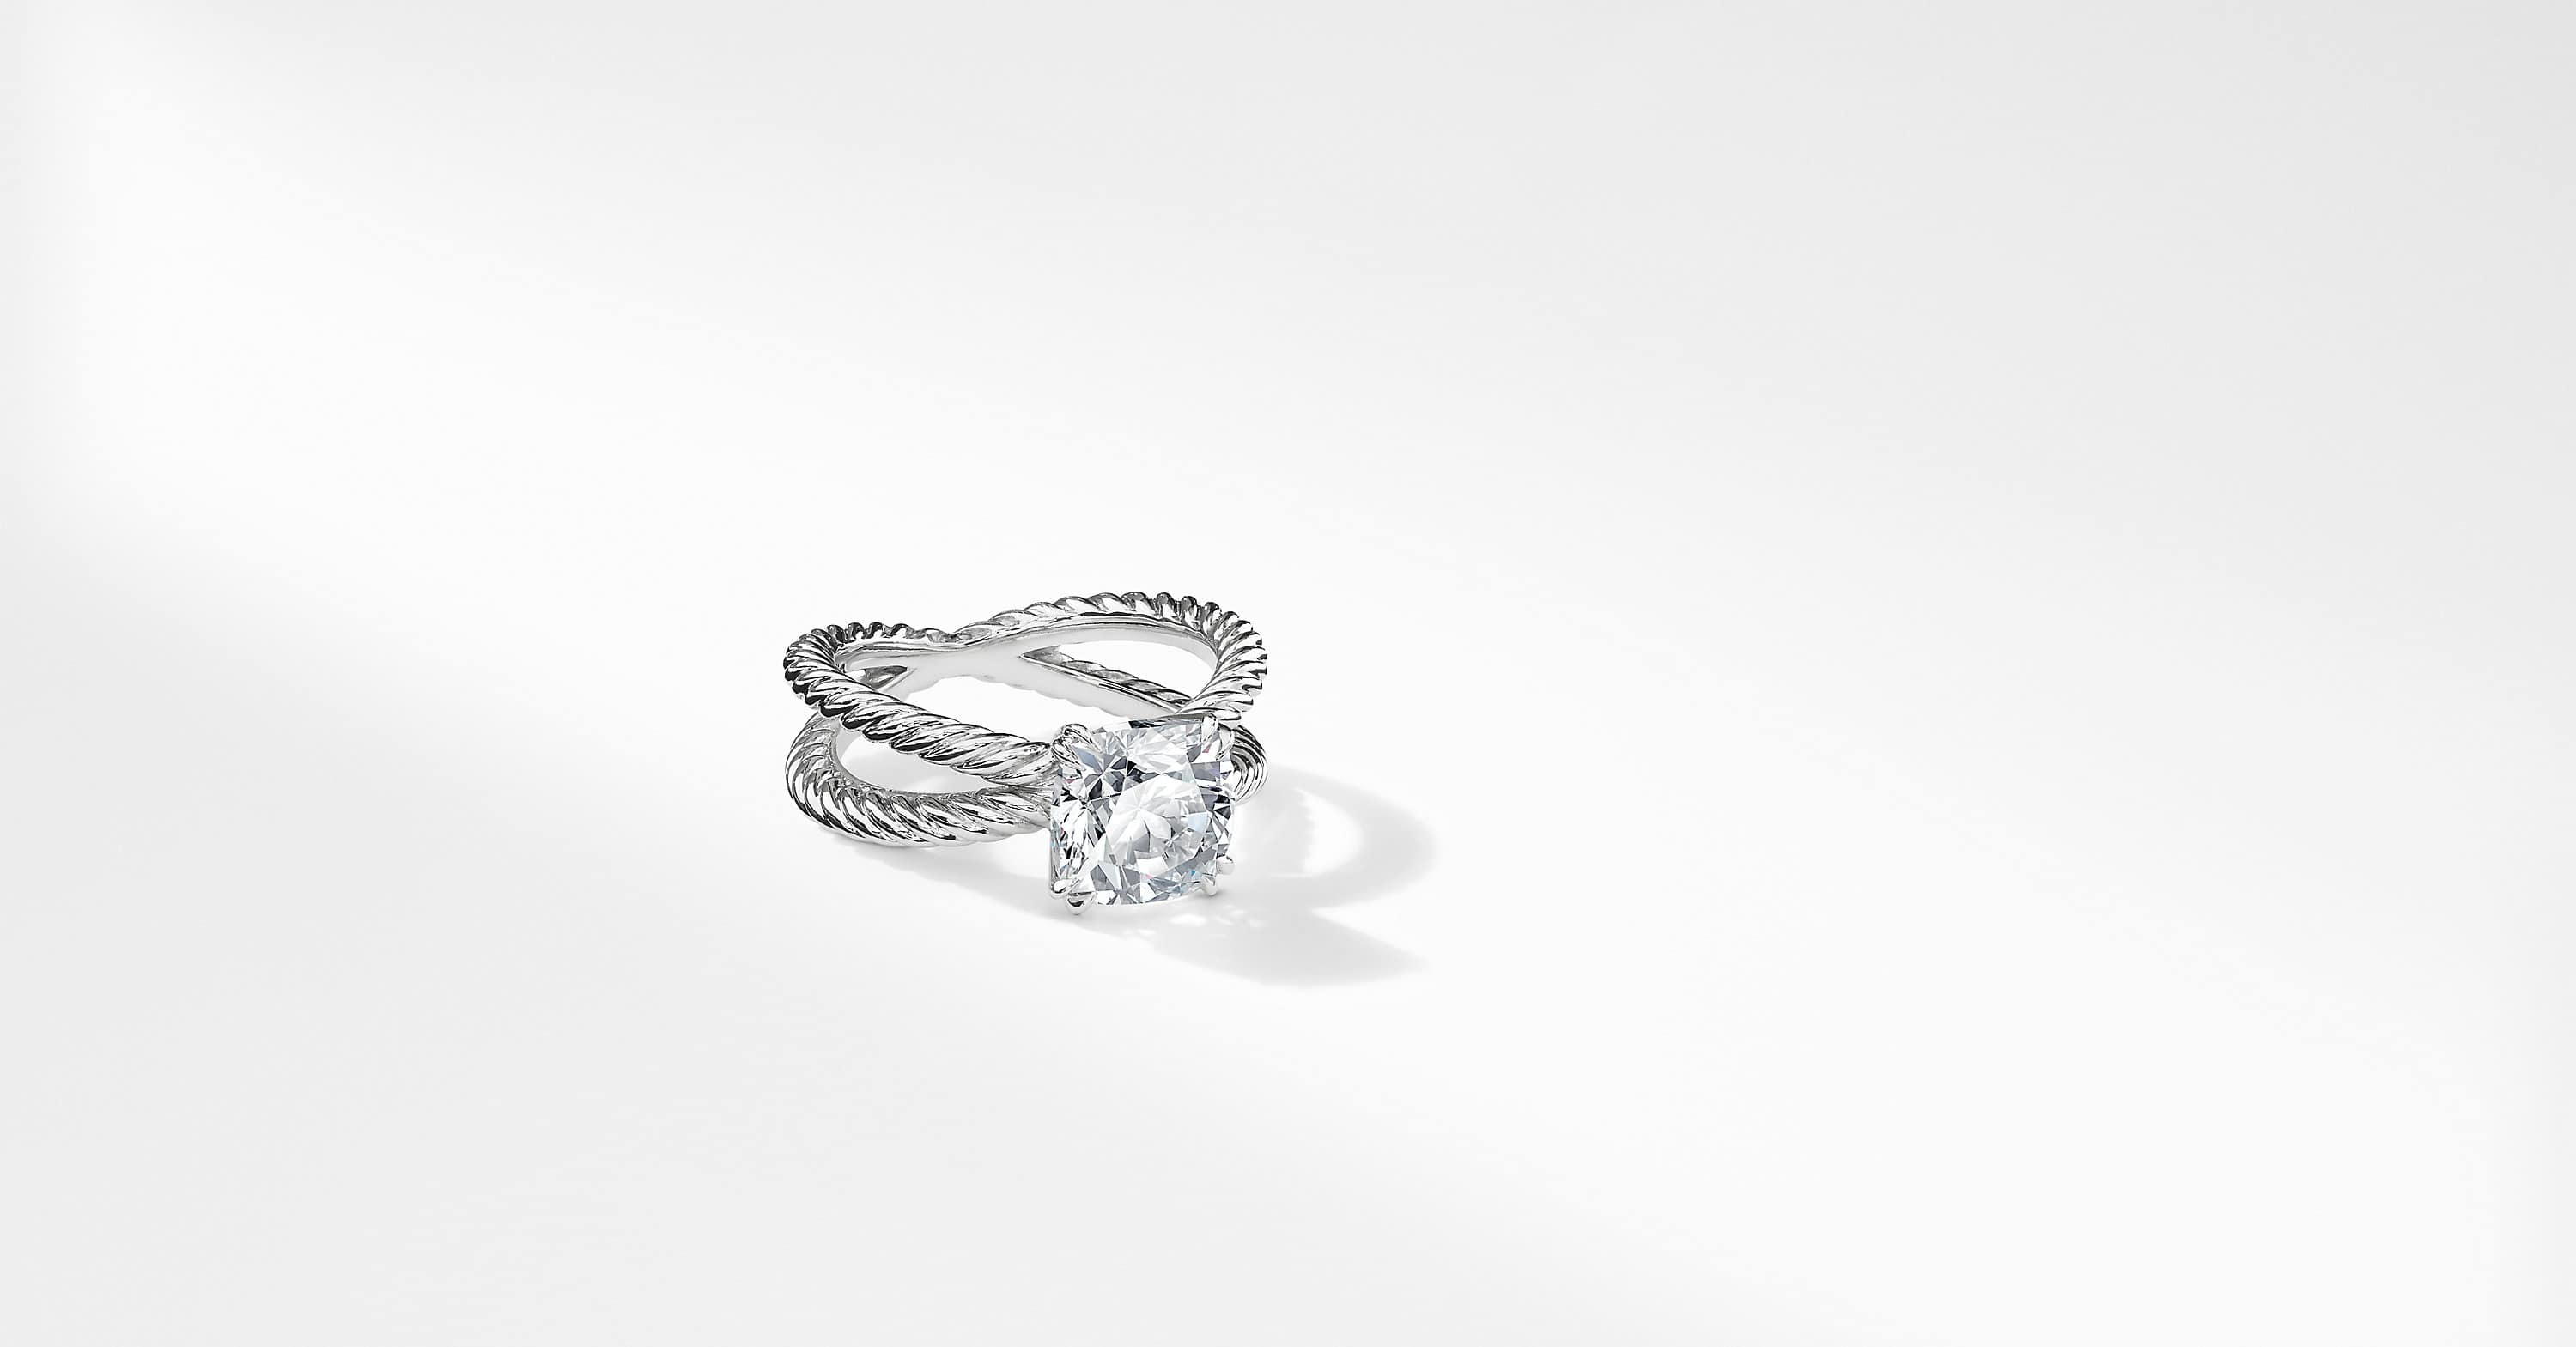 DY Crossover Engagement Ring in Platinum, DY Signature Cut